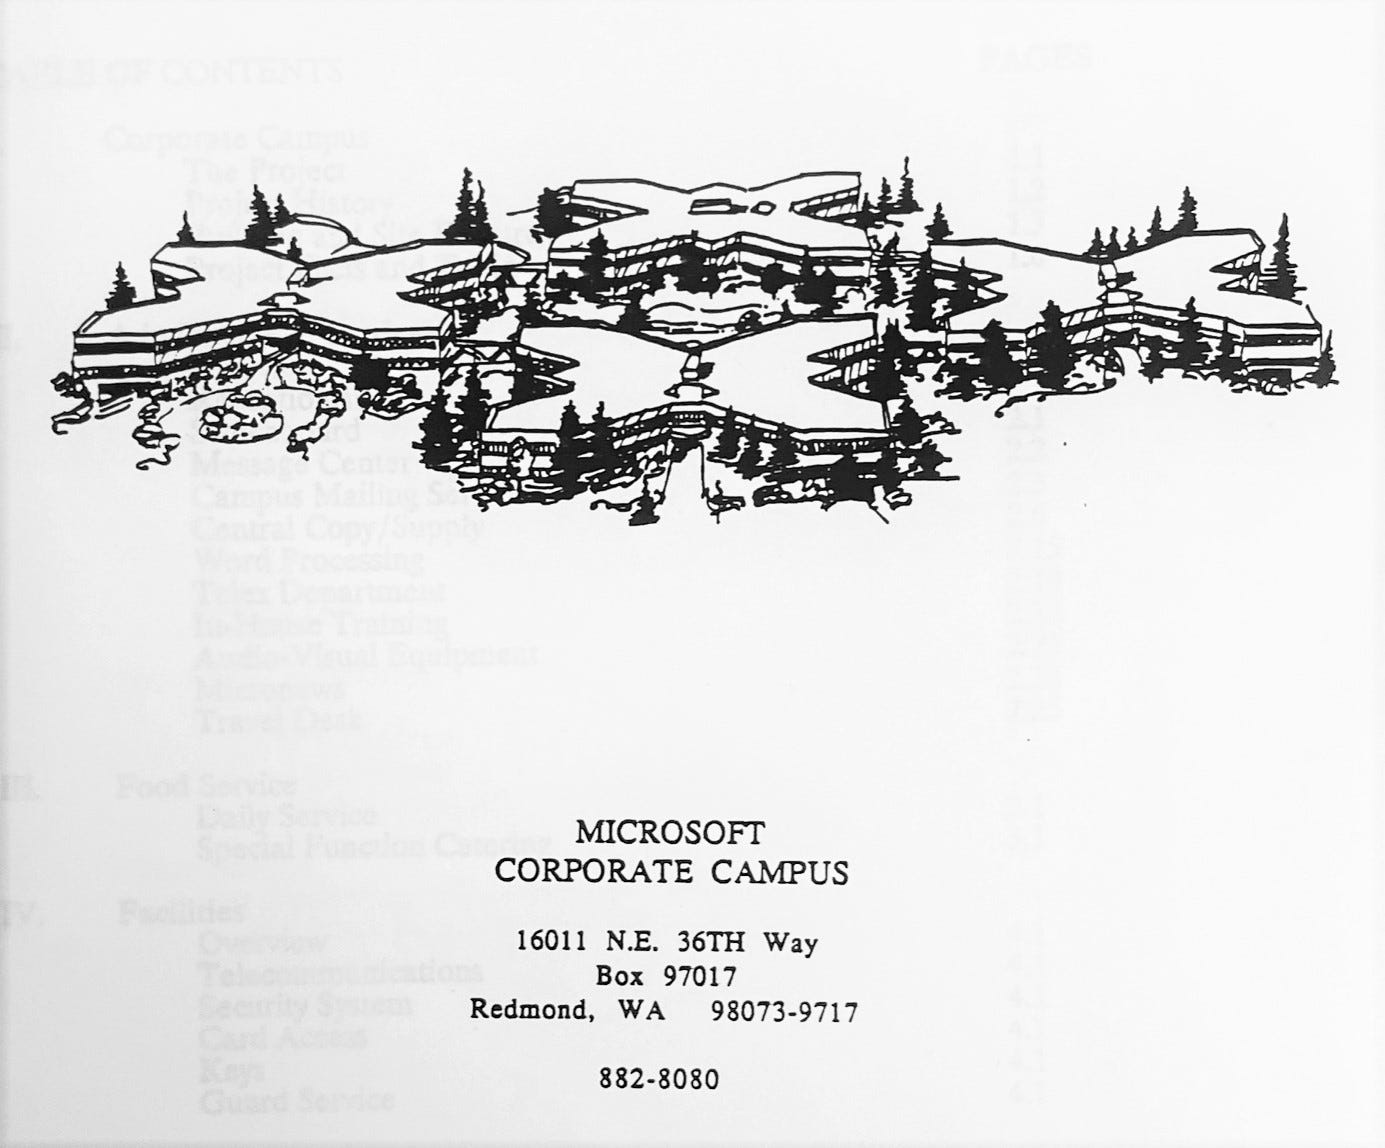 Photocopy of image of corporate campus showing 4 buildings.